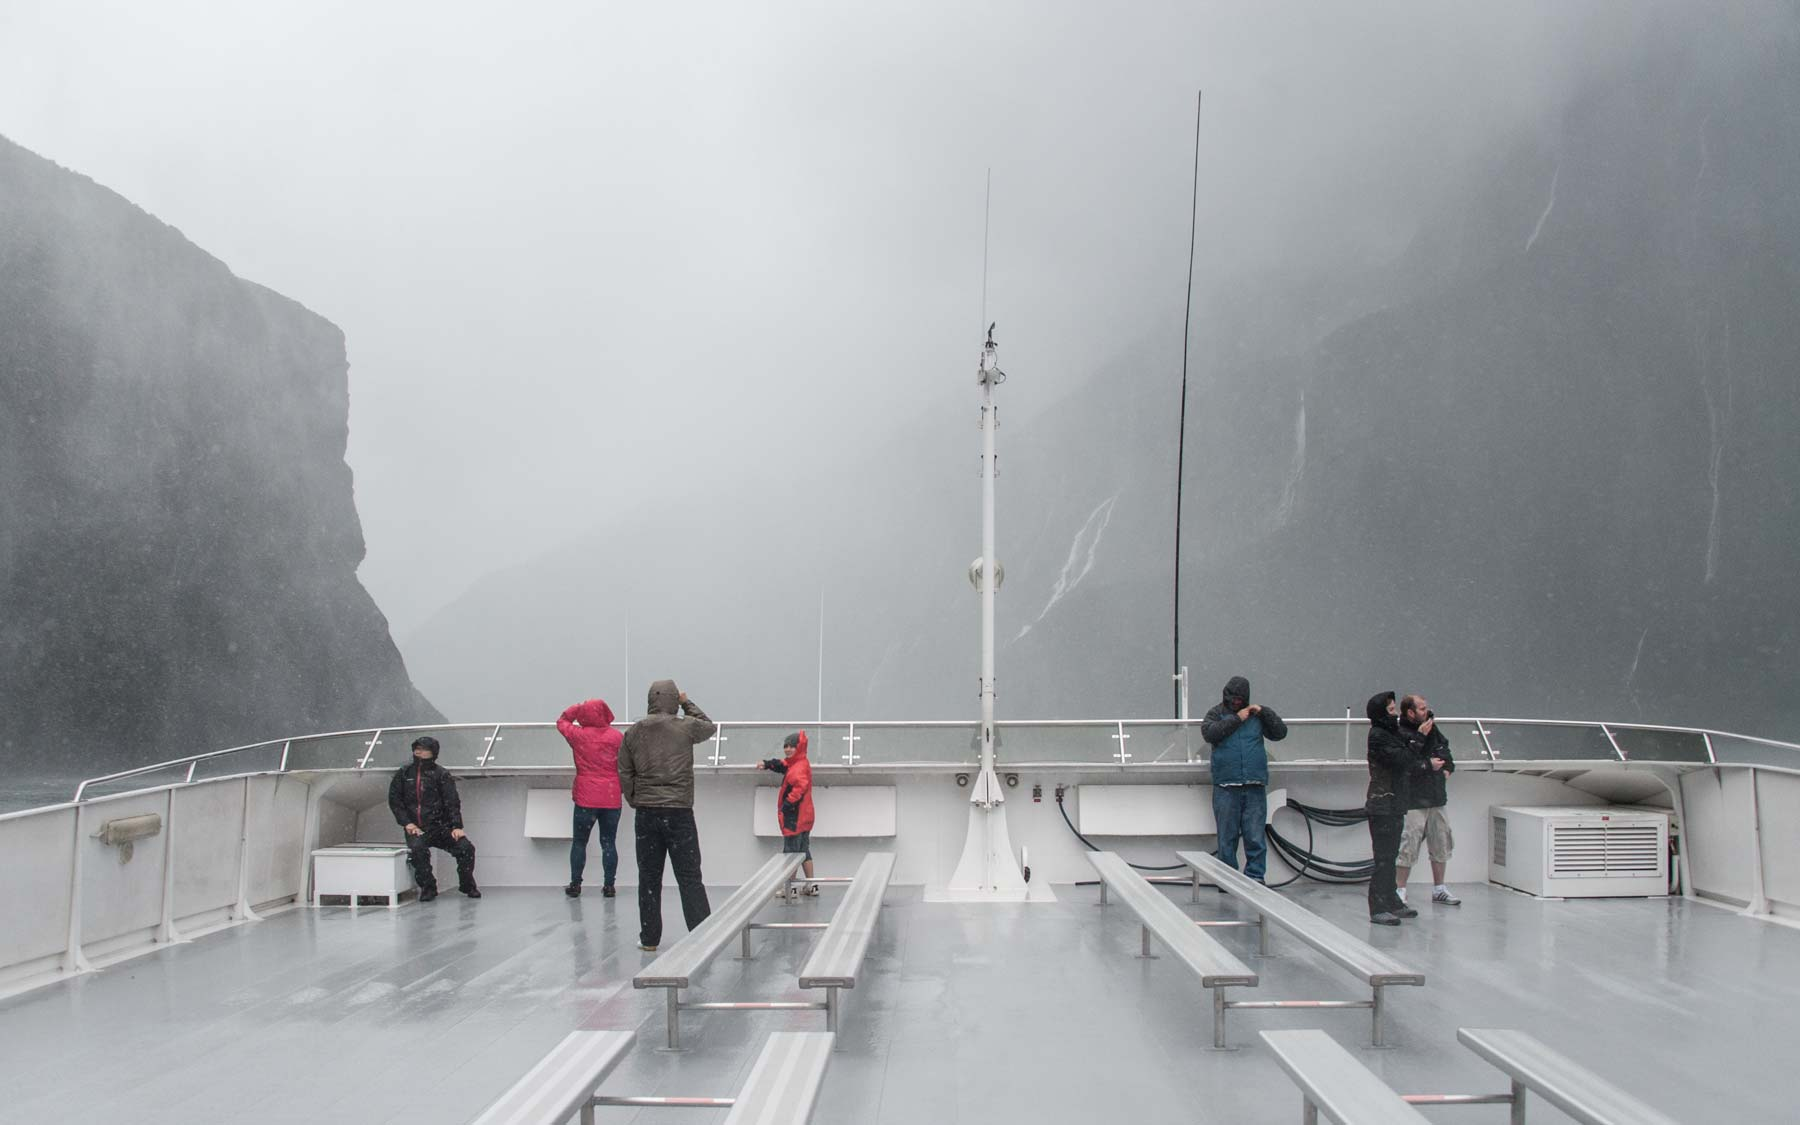 Venturing into Milford Sound